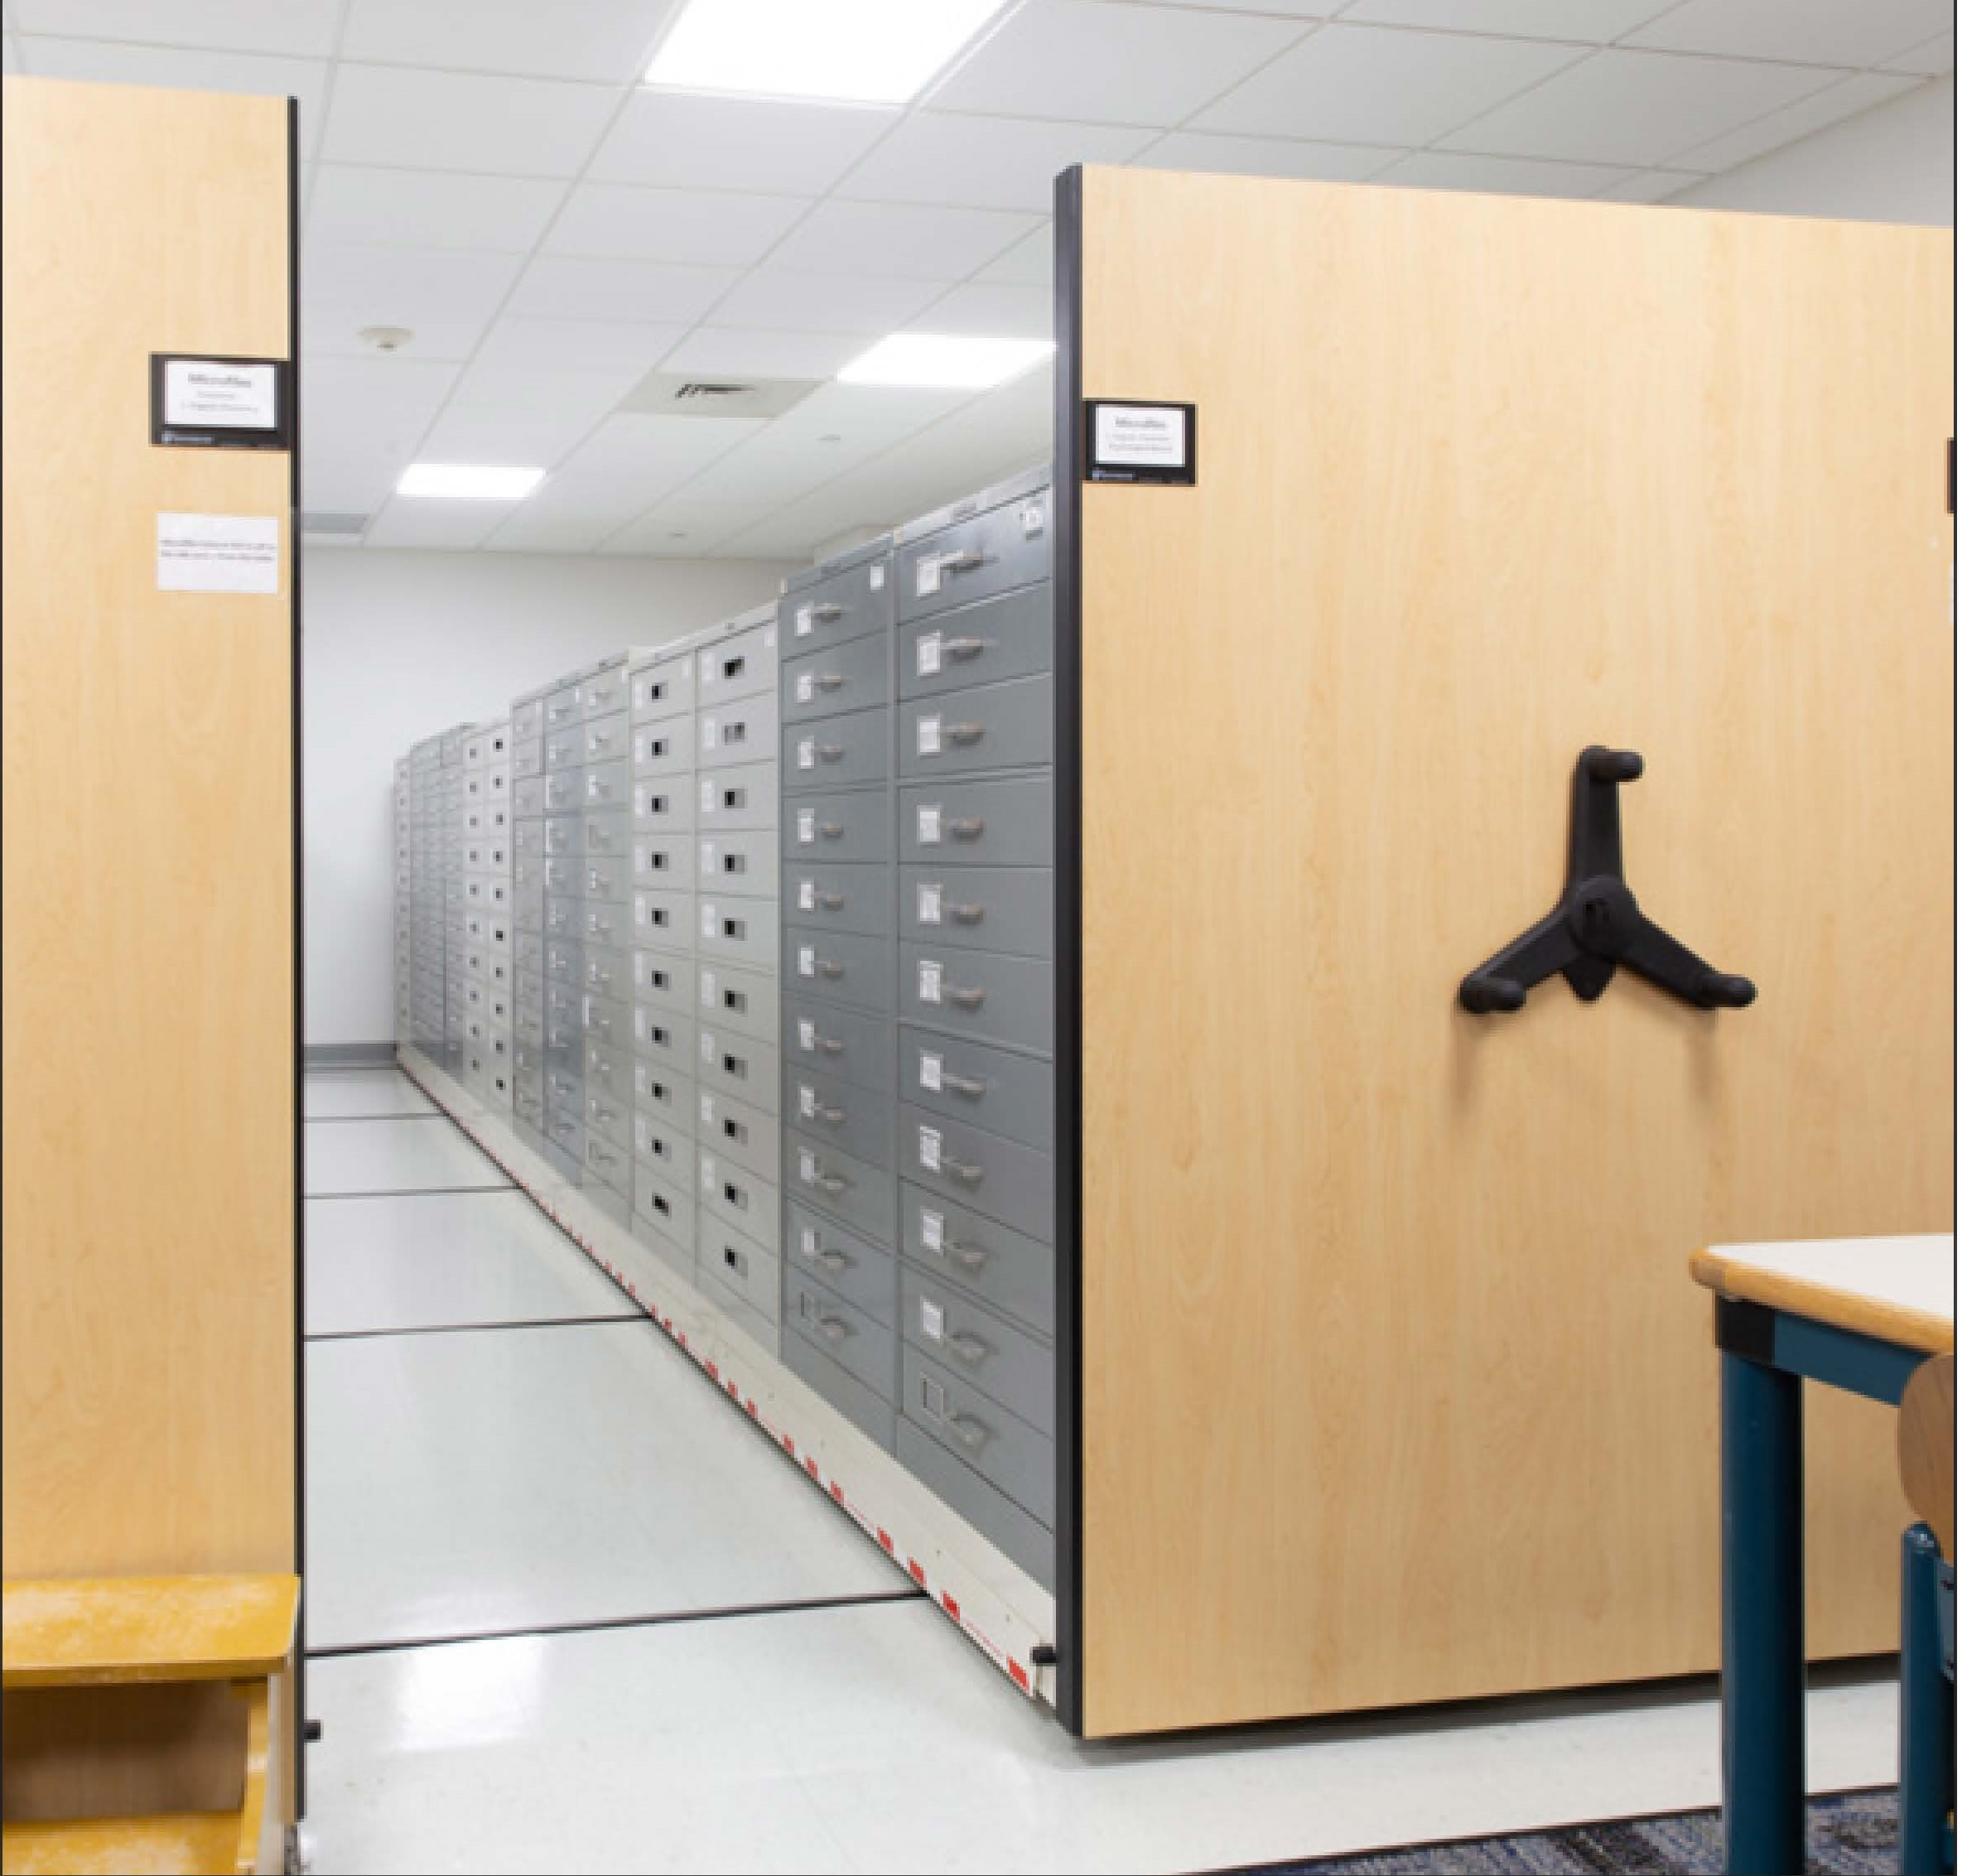 Mobile Storage for Library Allowed Makerspace